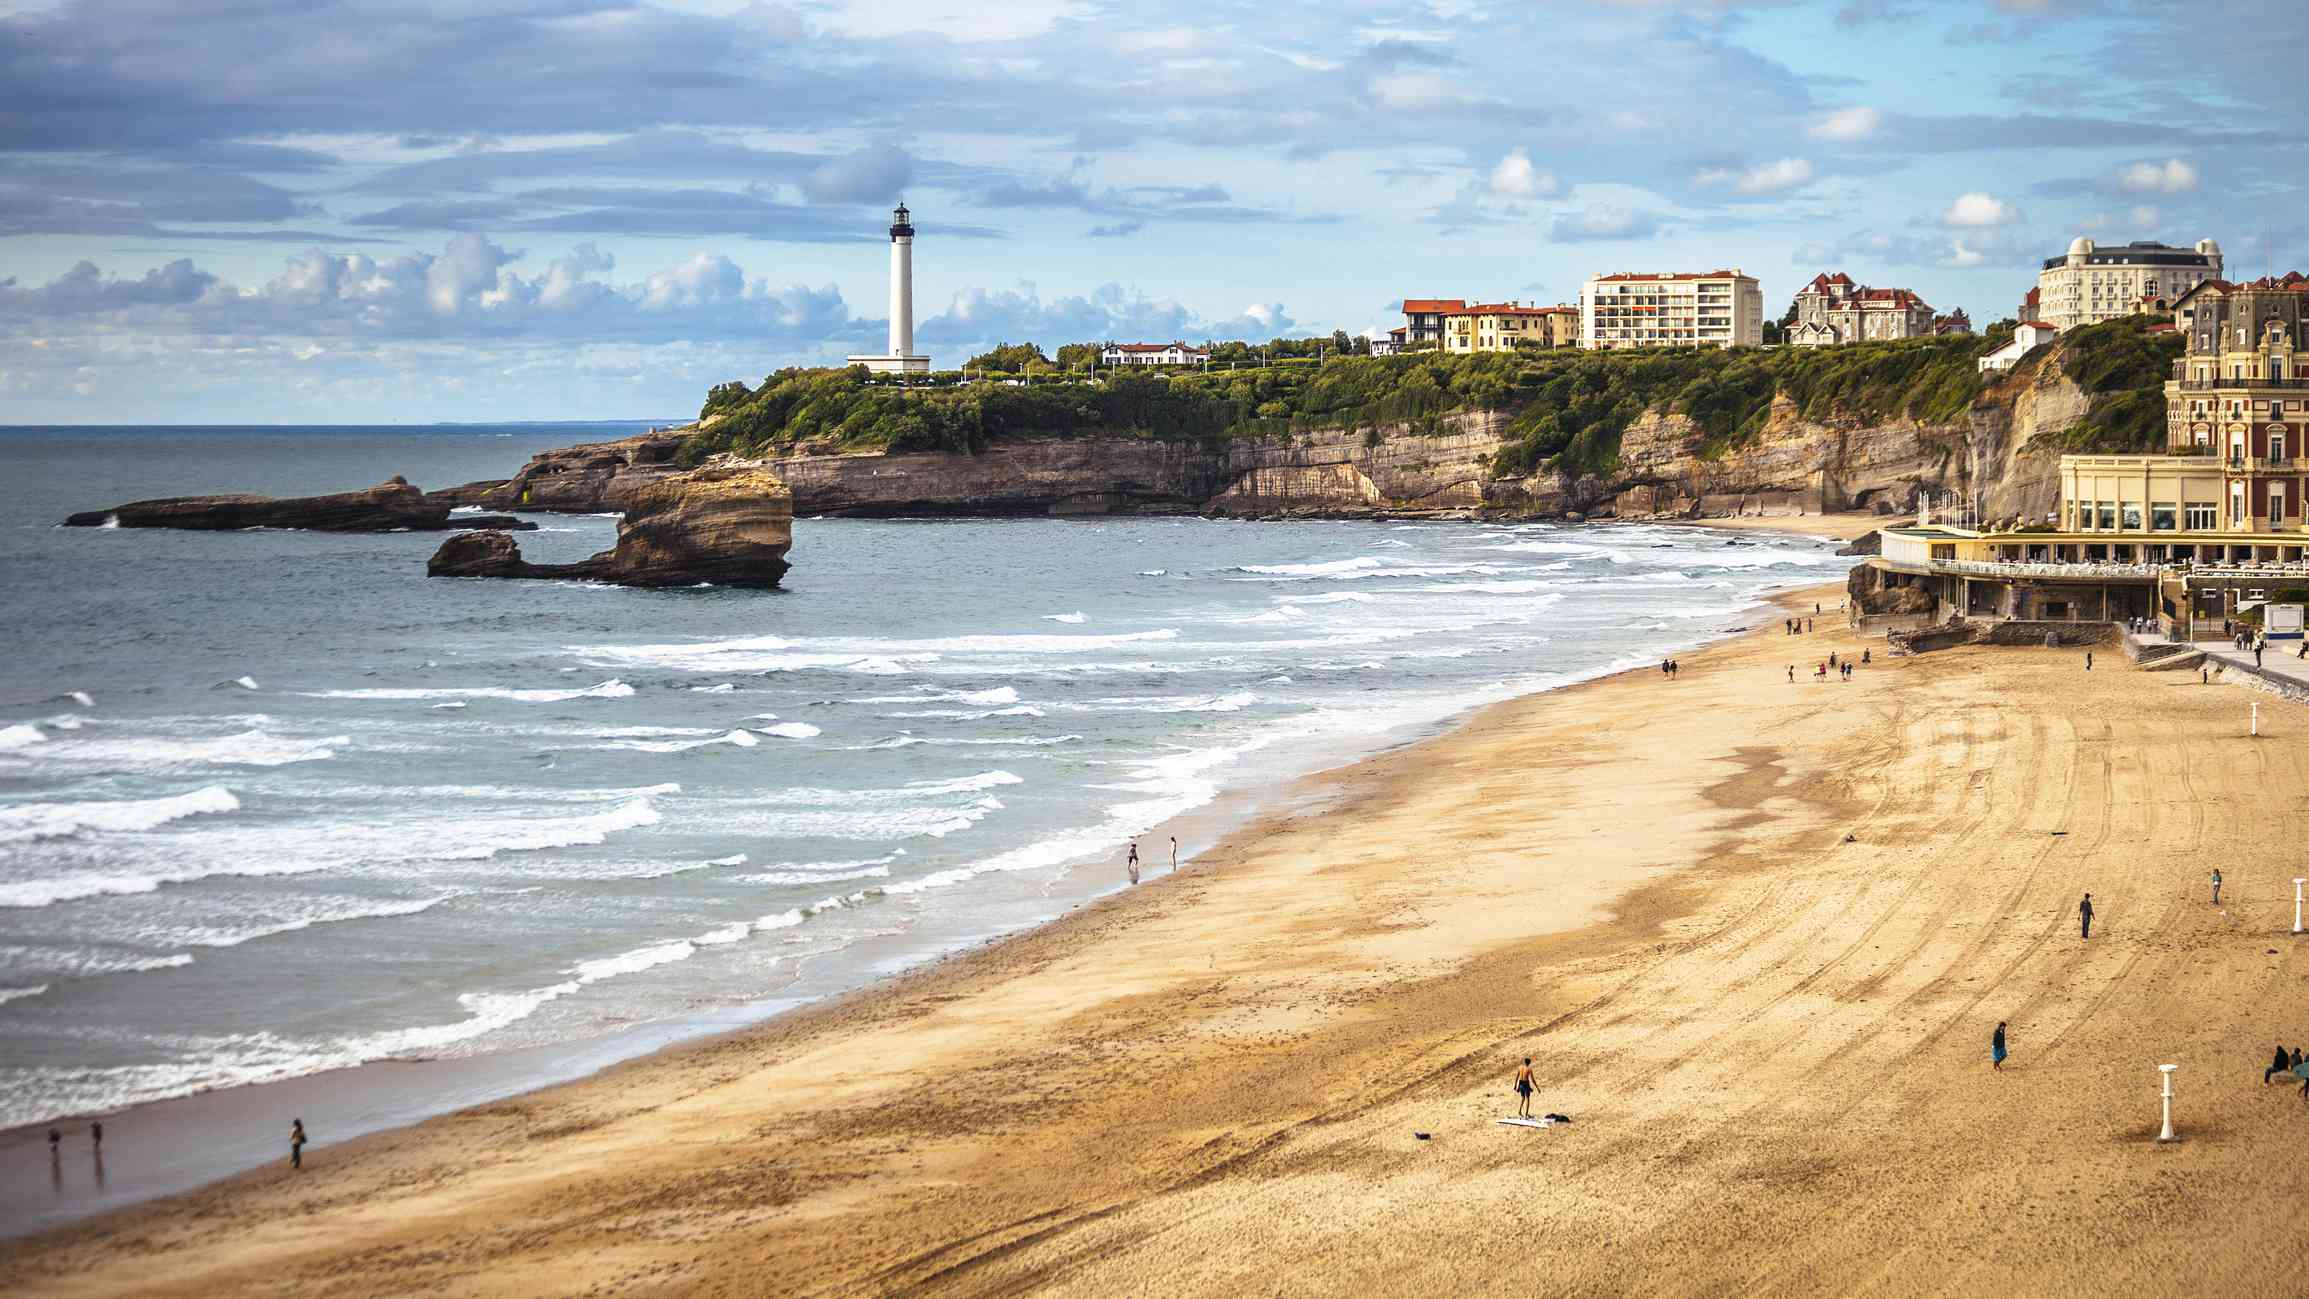 View to the beach. Biarritz, France.